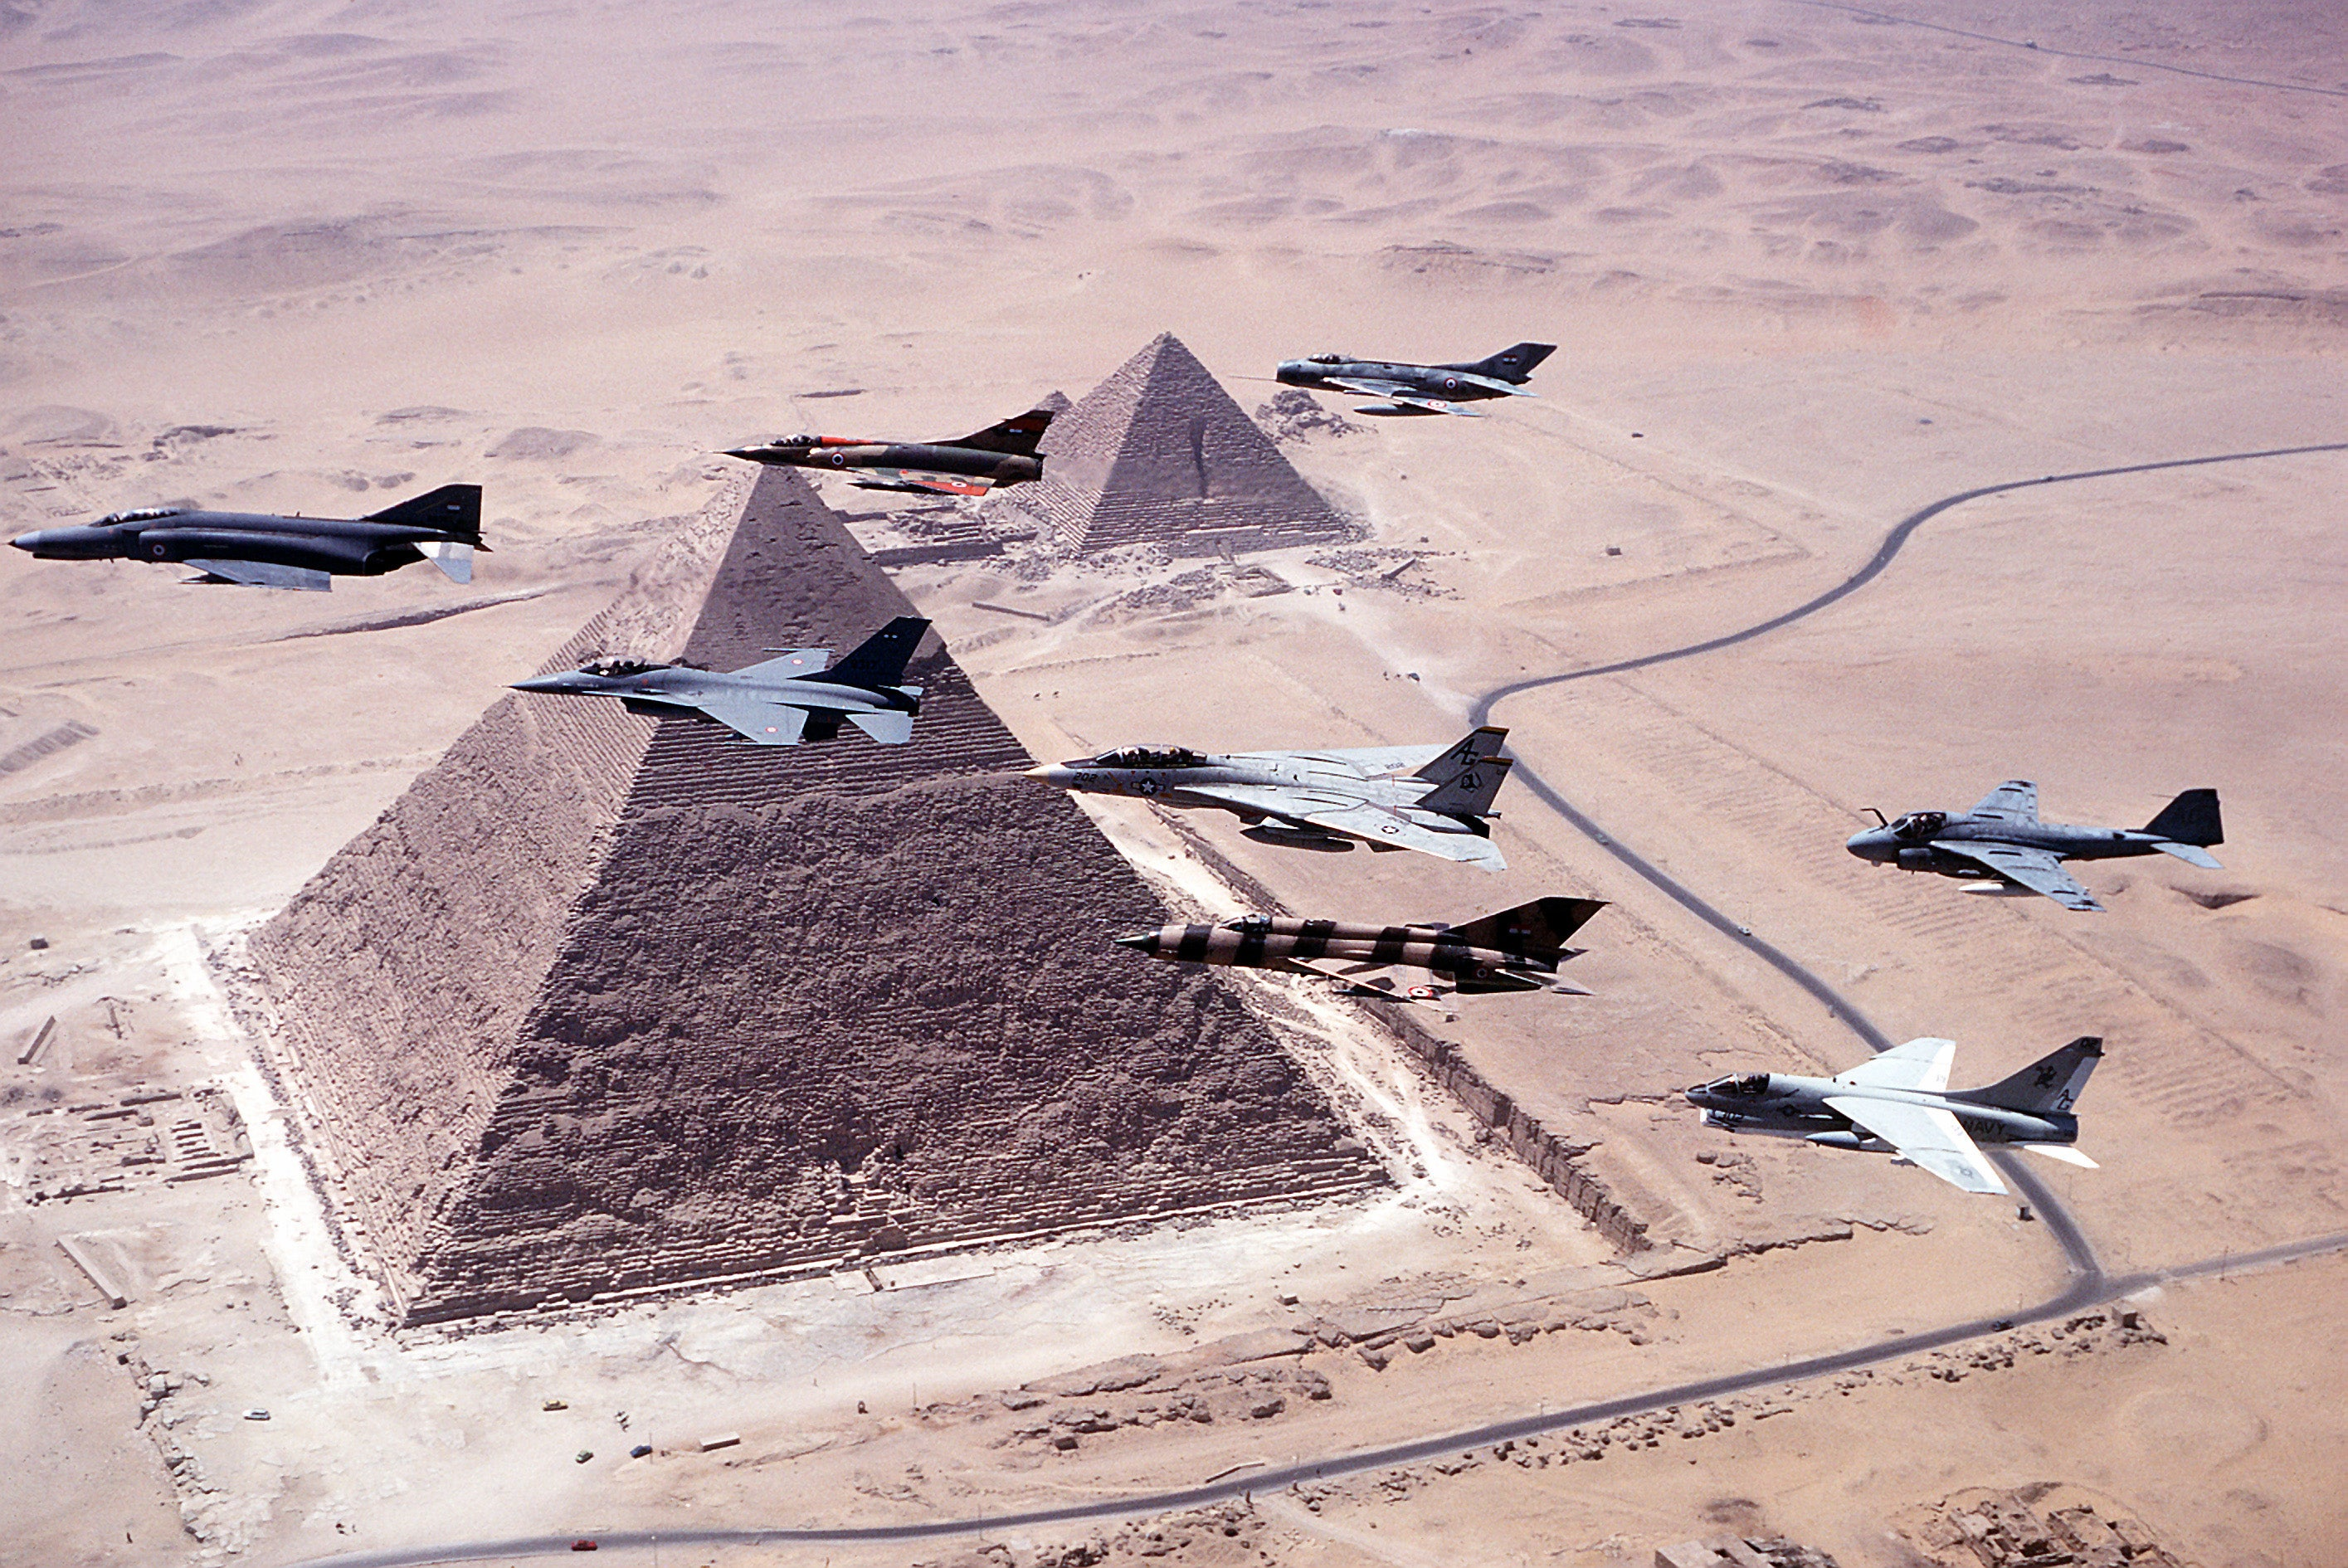 Impressive 1980s photo of old jet fighters flying over Giza's pyramids